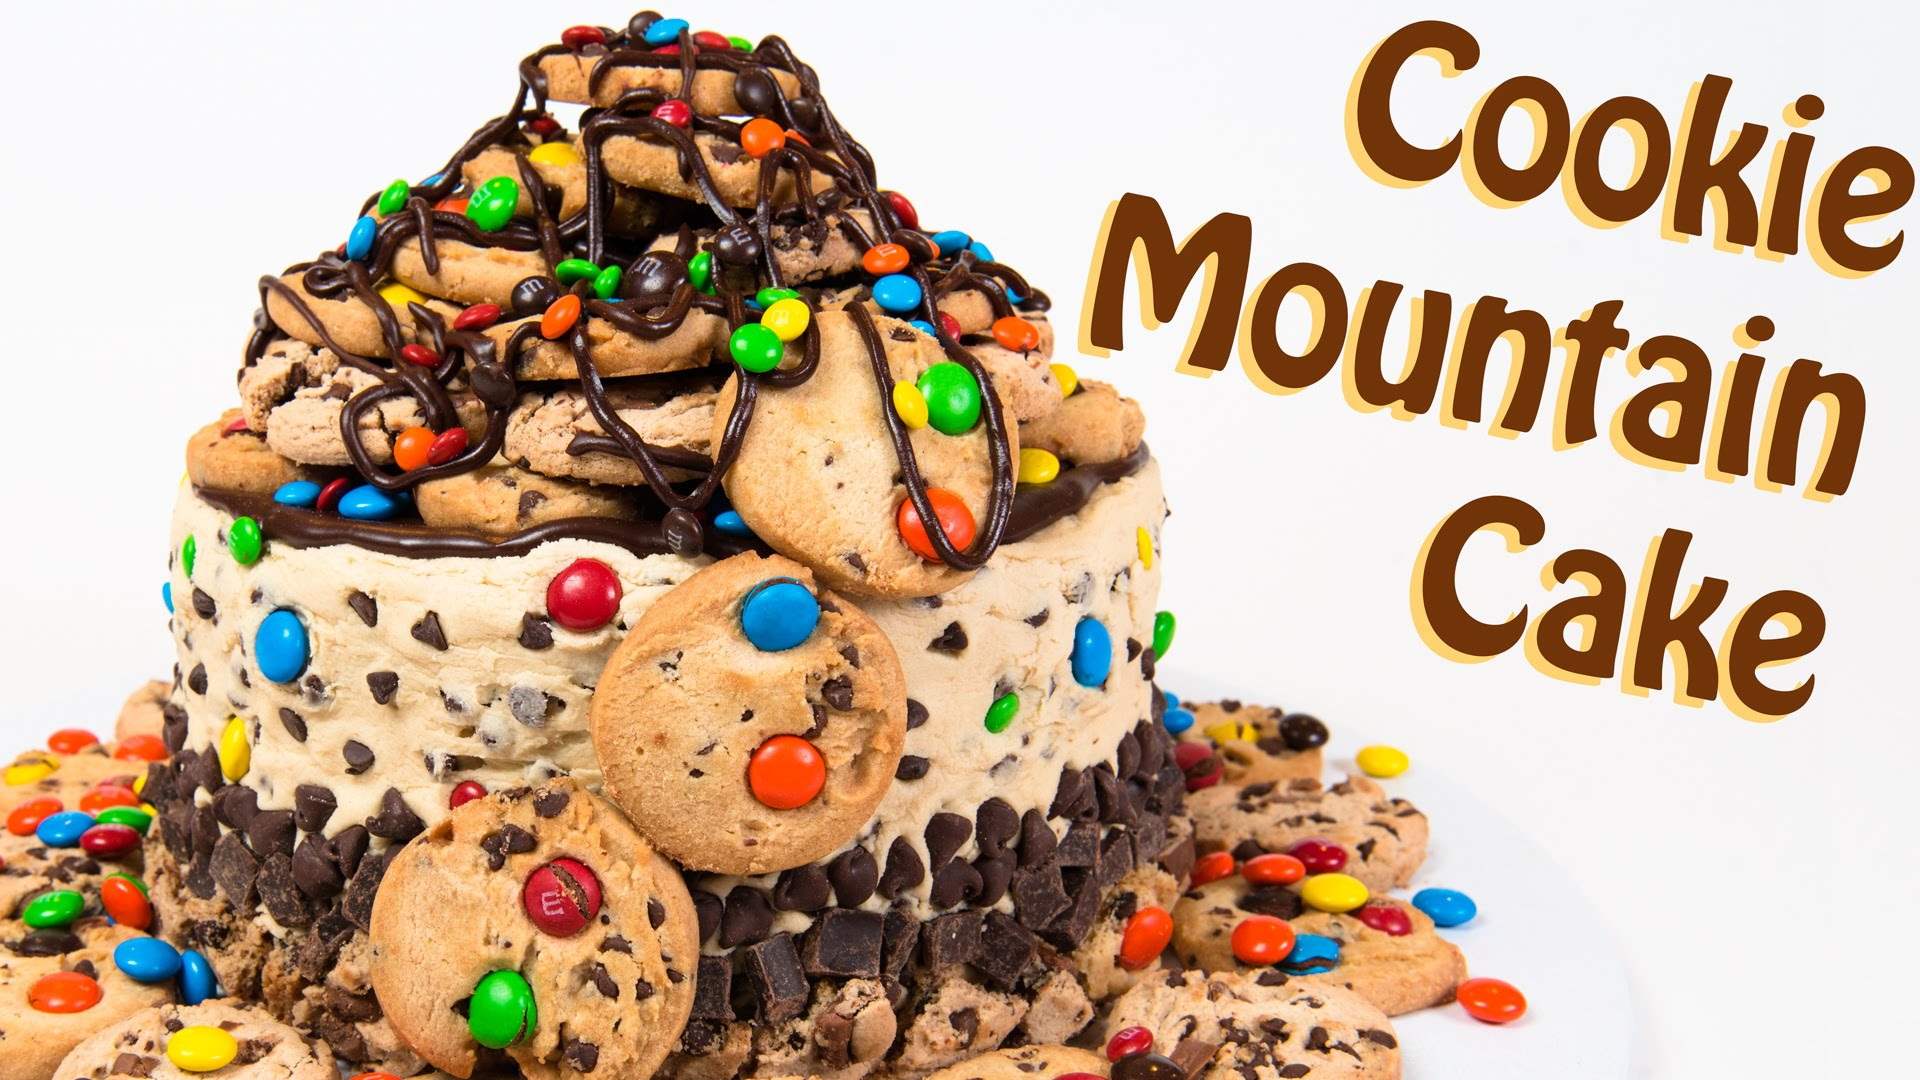 She Stacks Cookies On Top Of The Cake… But She Doesn't Stop There